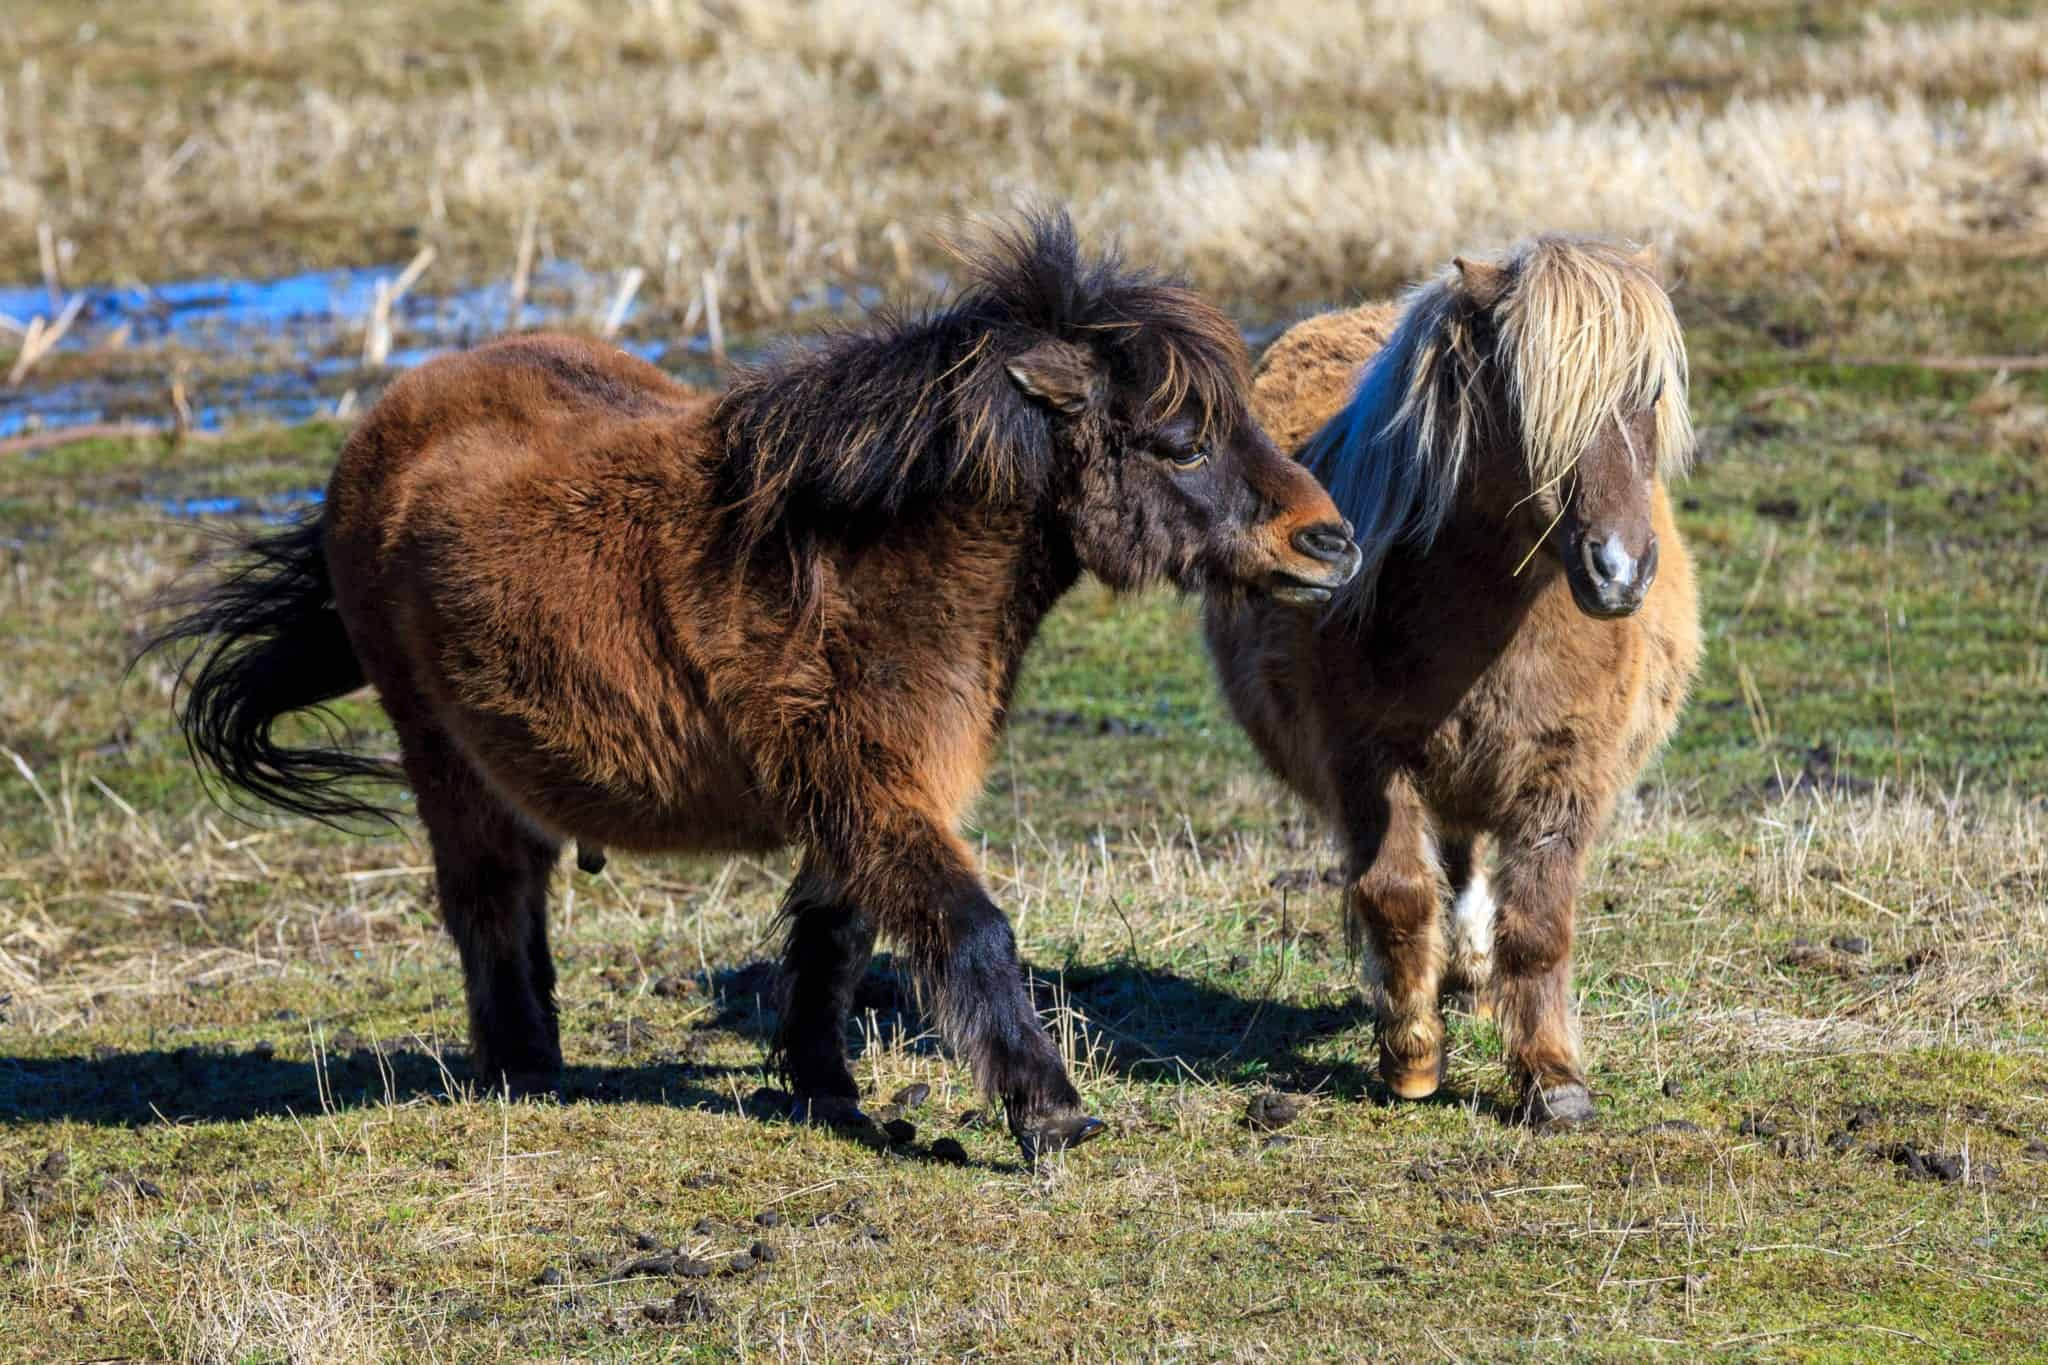 Two cute miniature horses interact in a field near Harrison, Idaho.